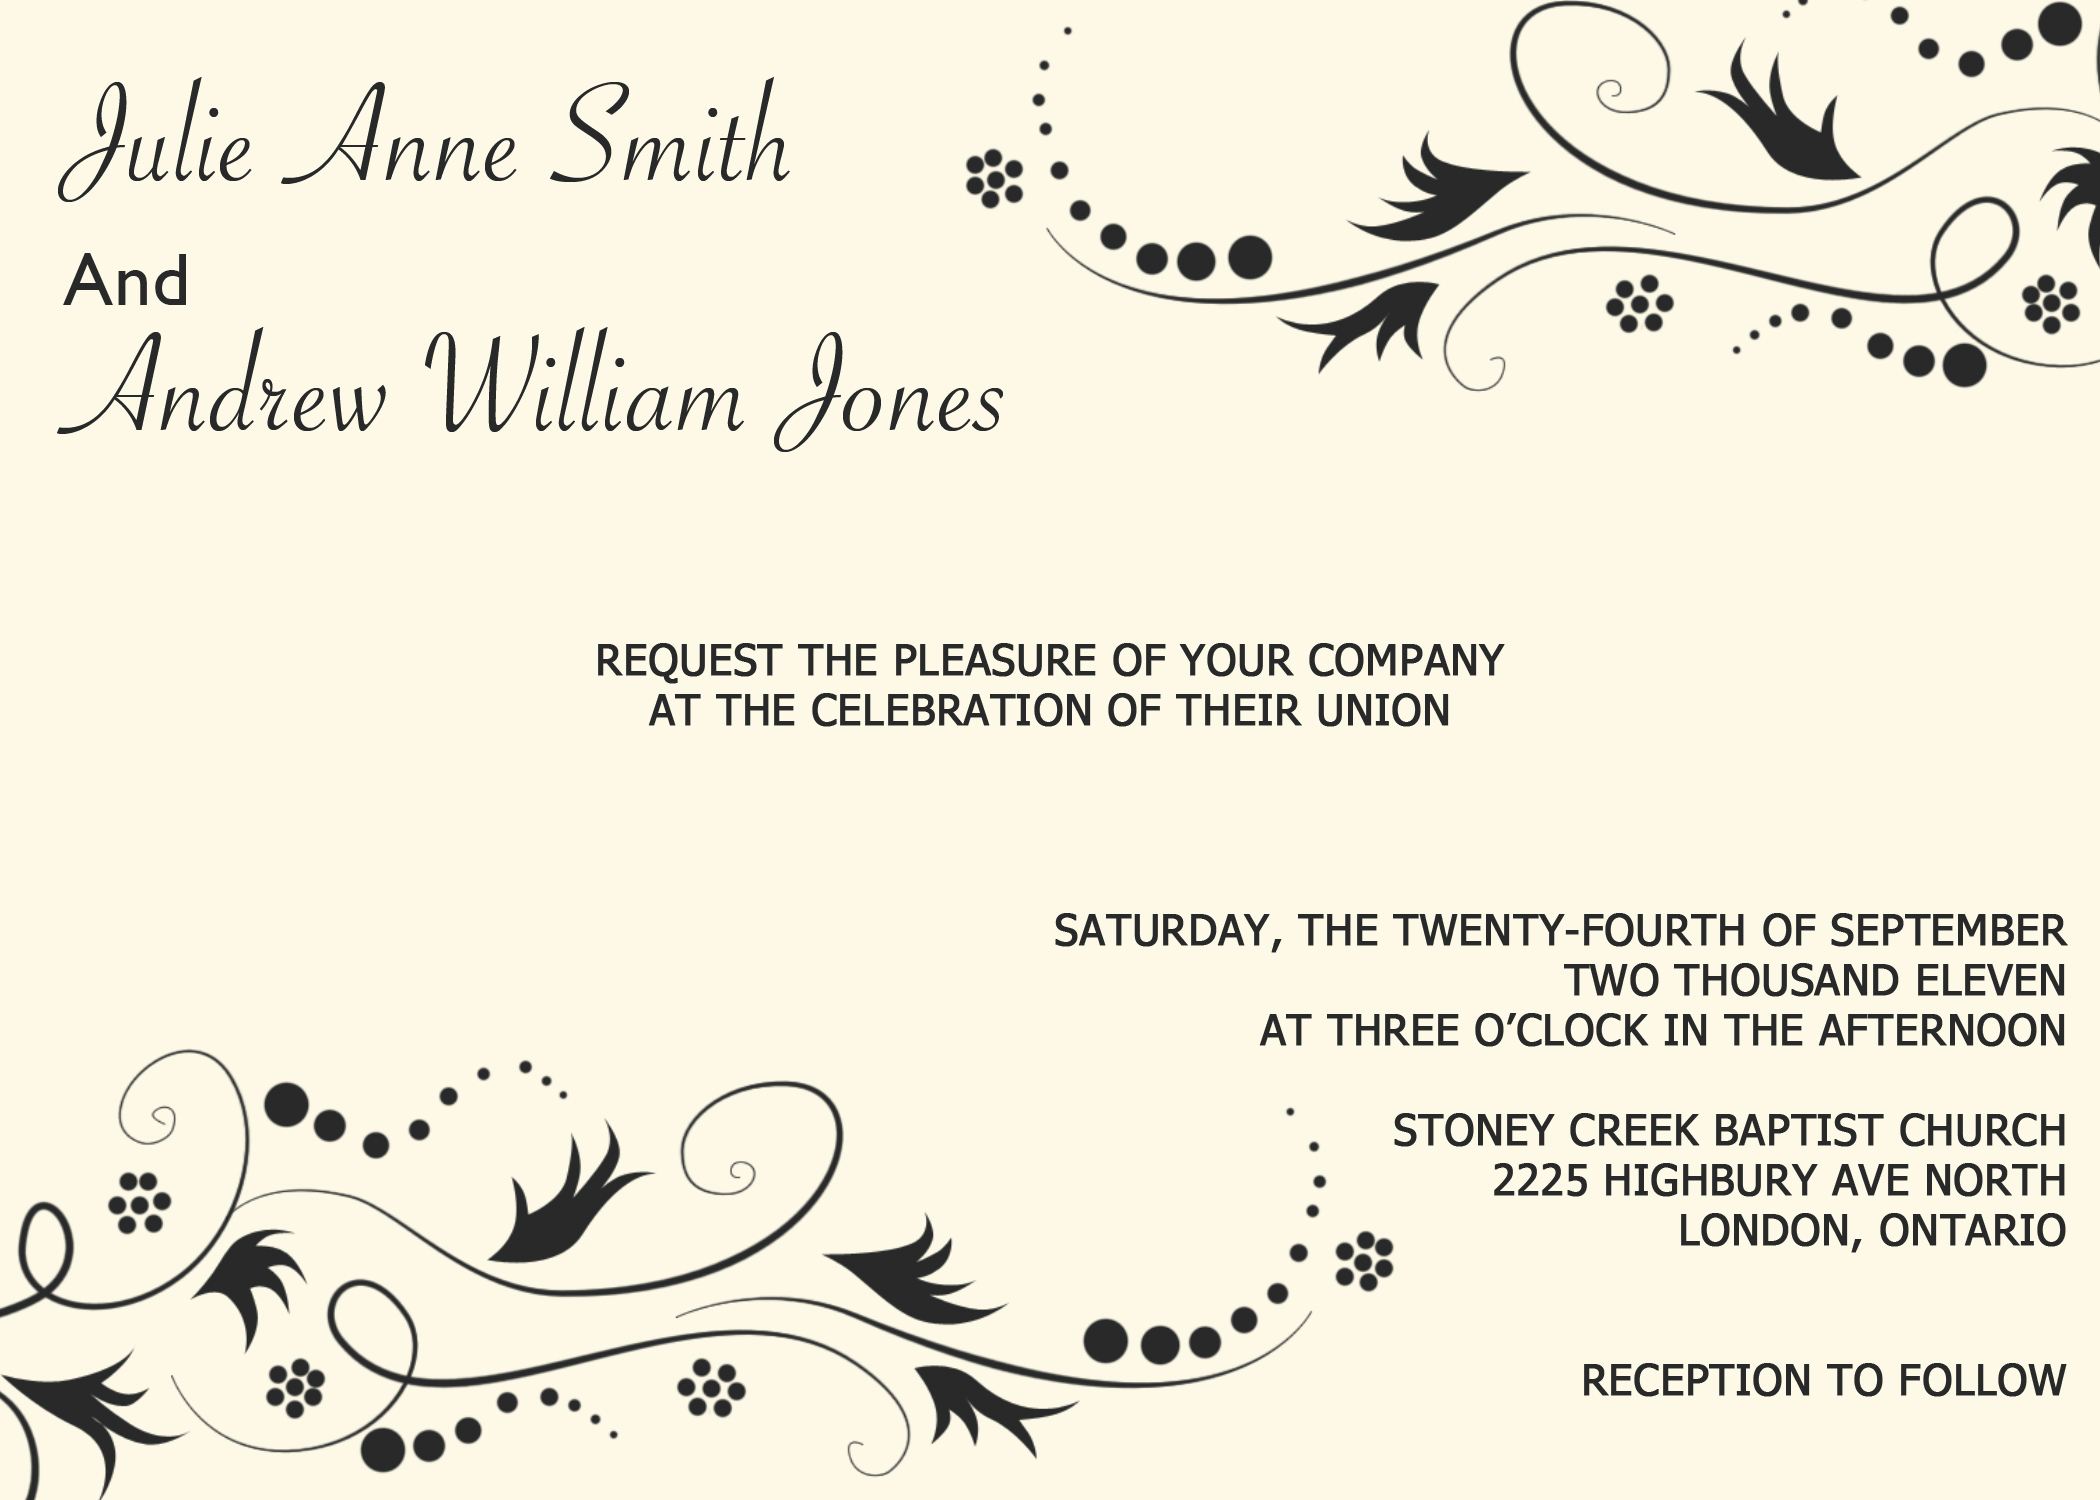 Lovely Digital Wedding Invitation 7 Online Store Powered by Storenvy